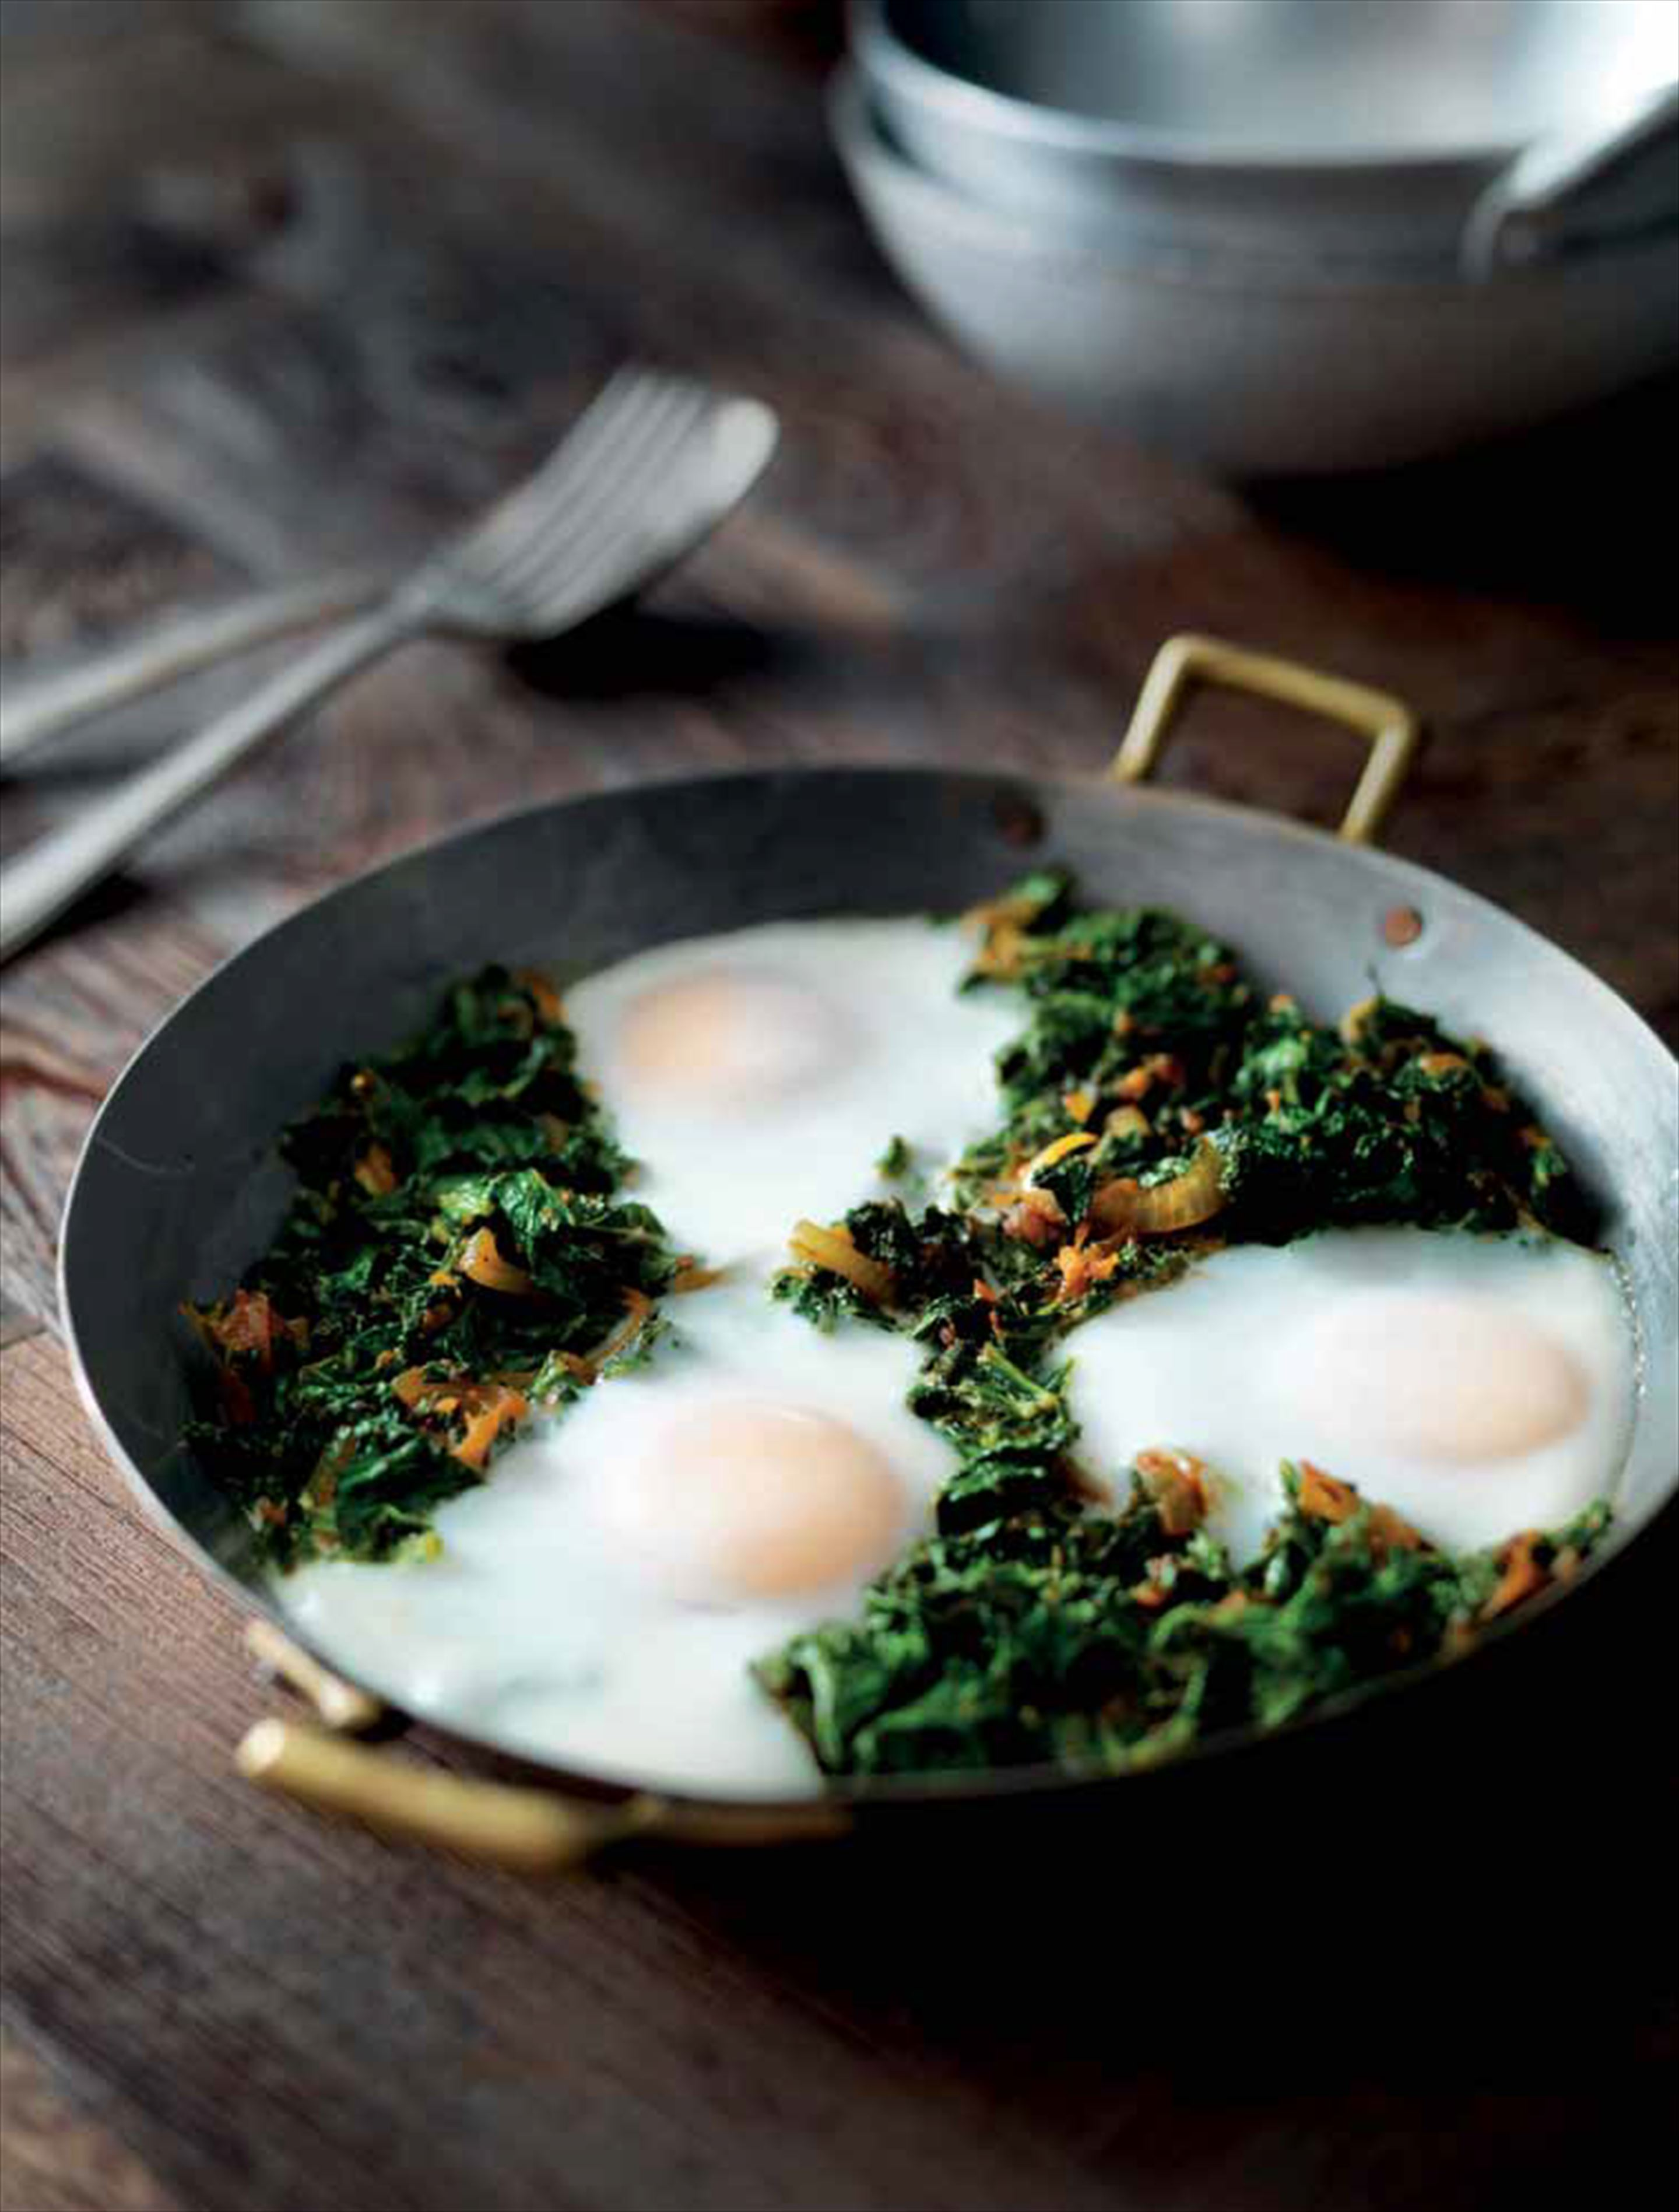 Kale and spinach with eggs